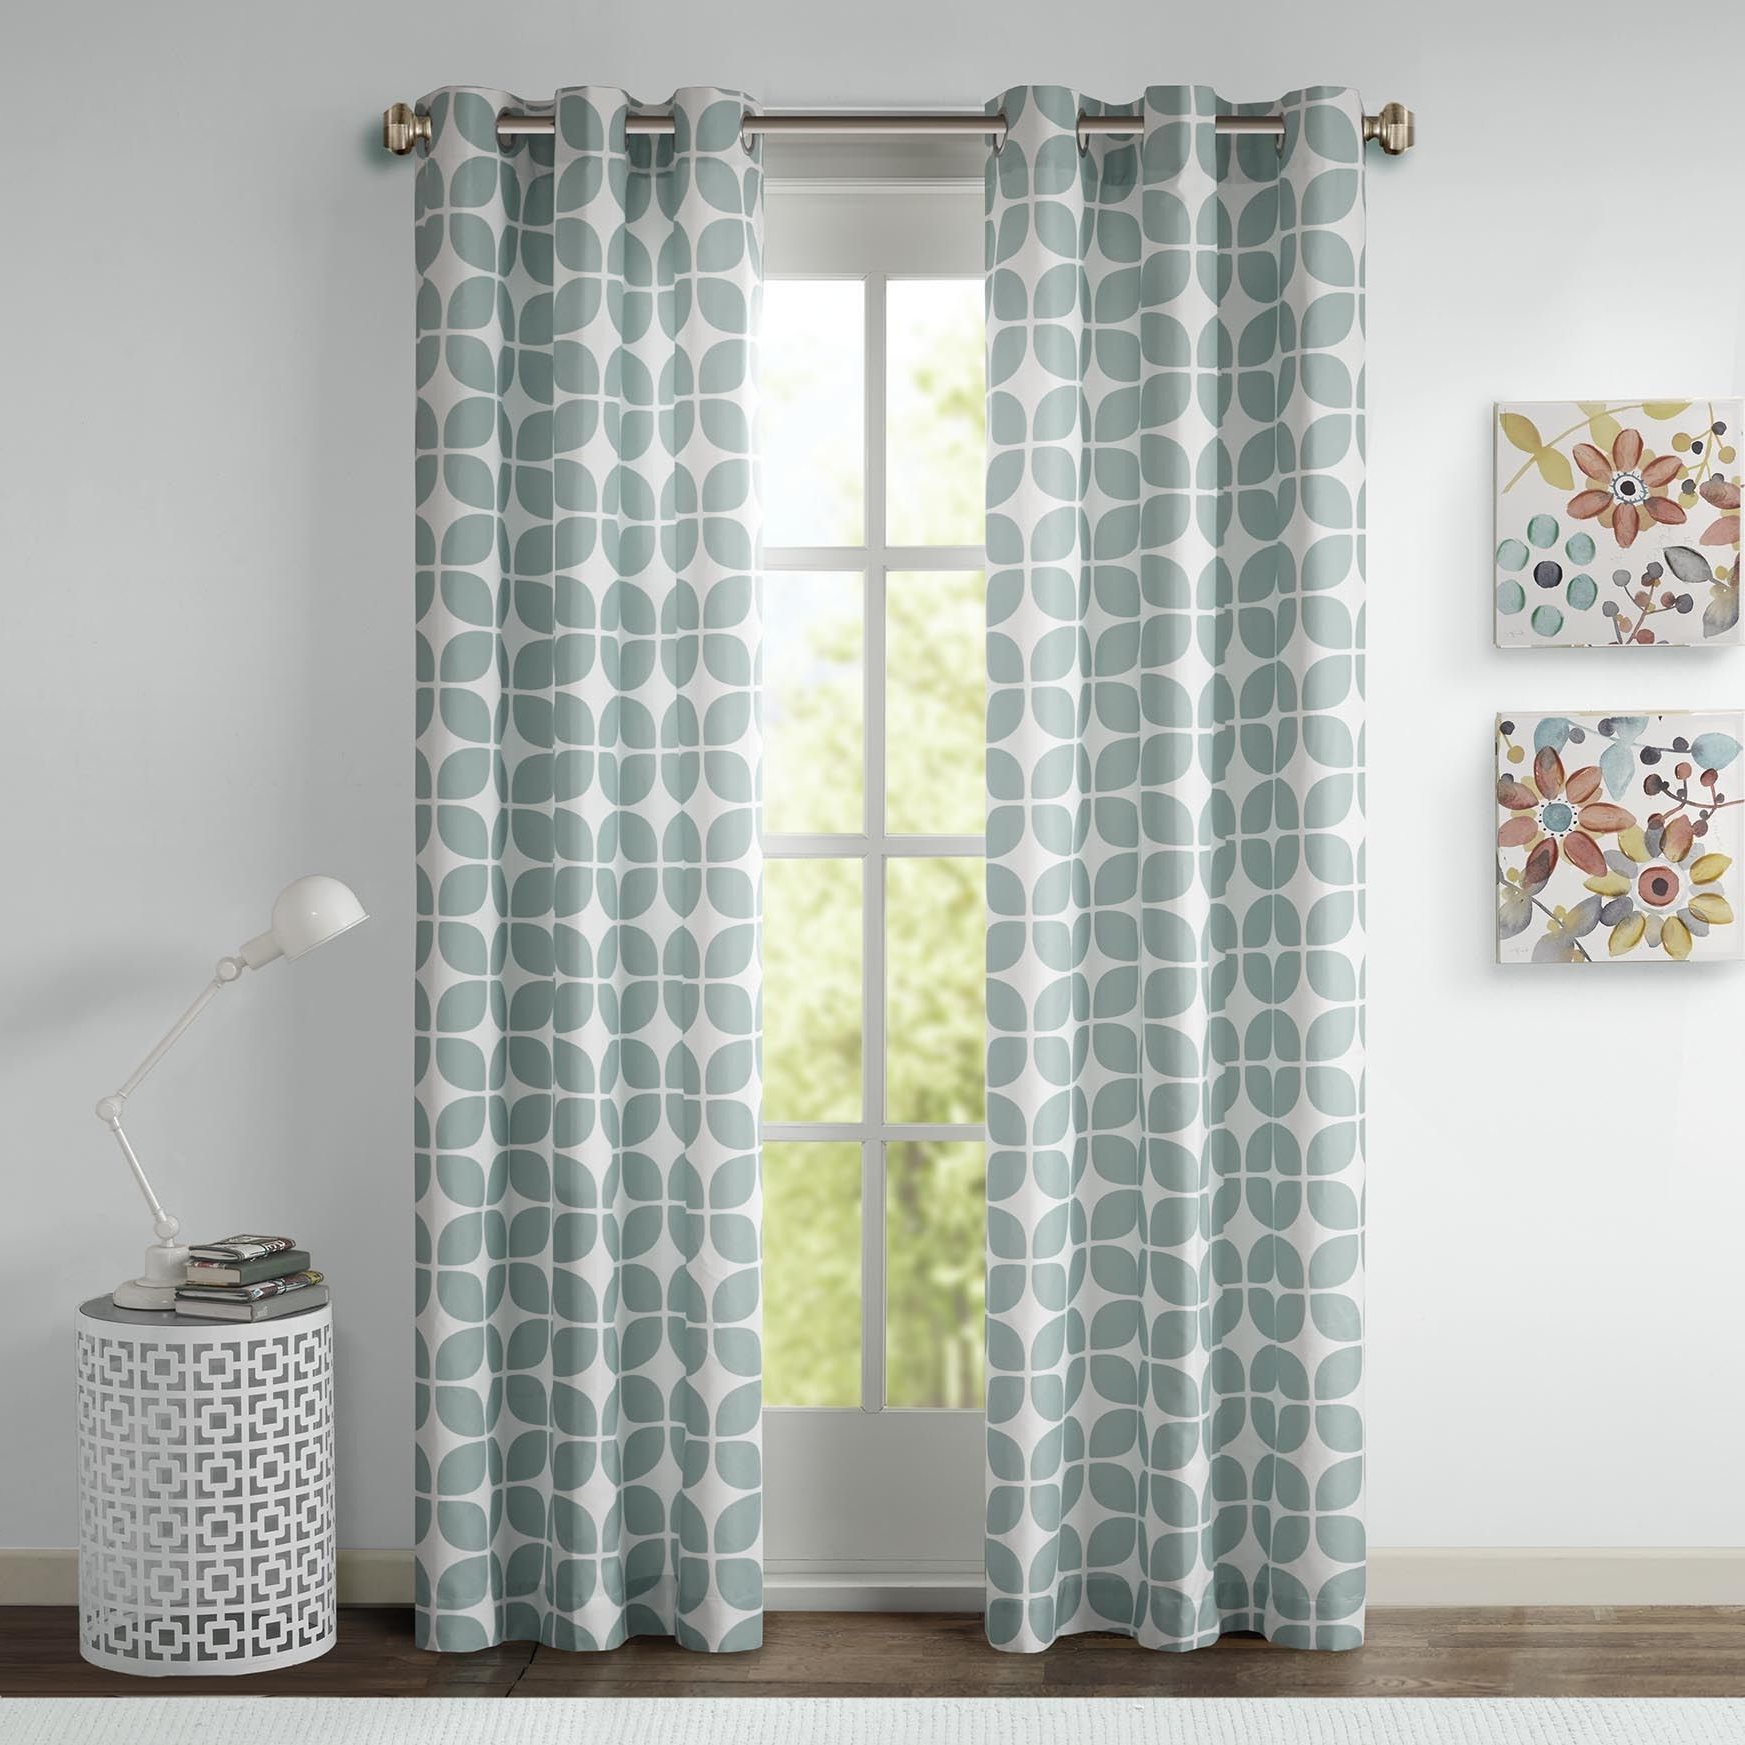 This Geometric Printed Panel Pair Is The Perfect Modern Within Famous Essentials Almaden Fretwork Printed Grommet Top Curtain Panel Pairs (View 13 of 20)